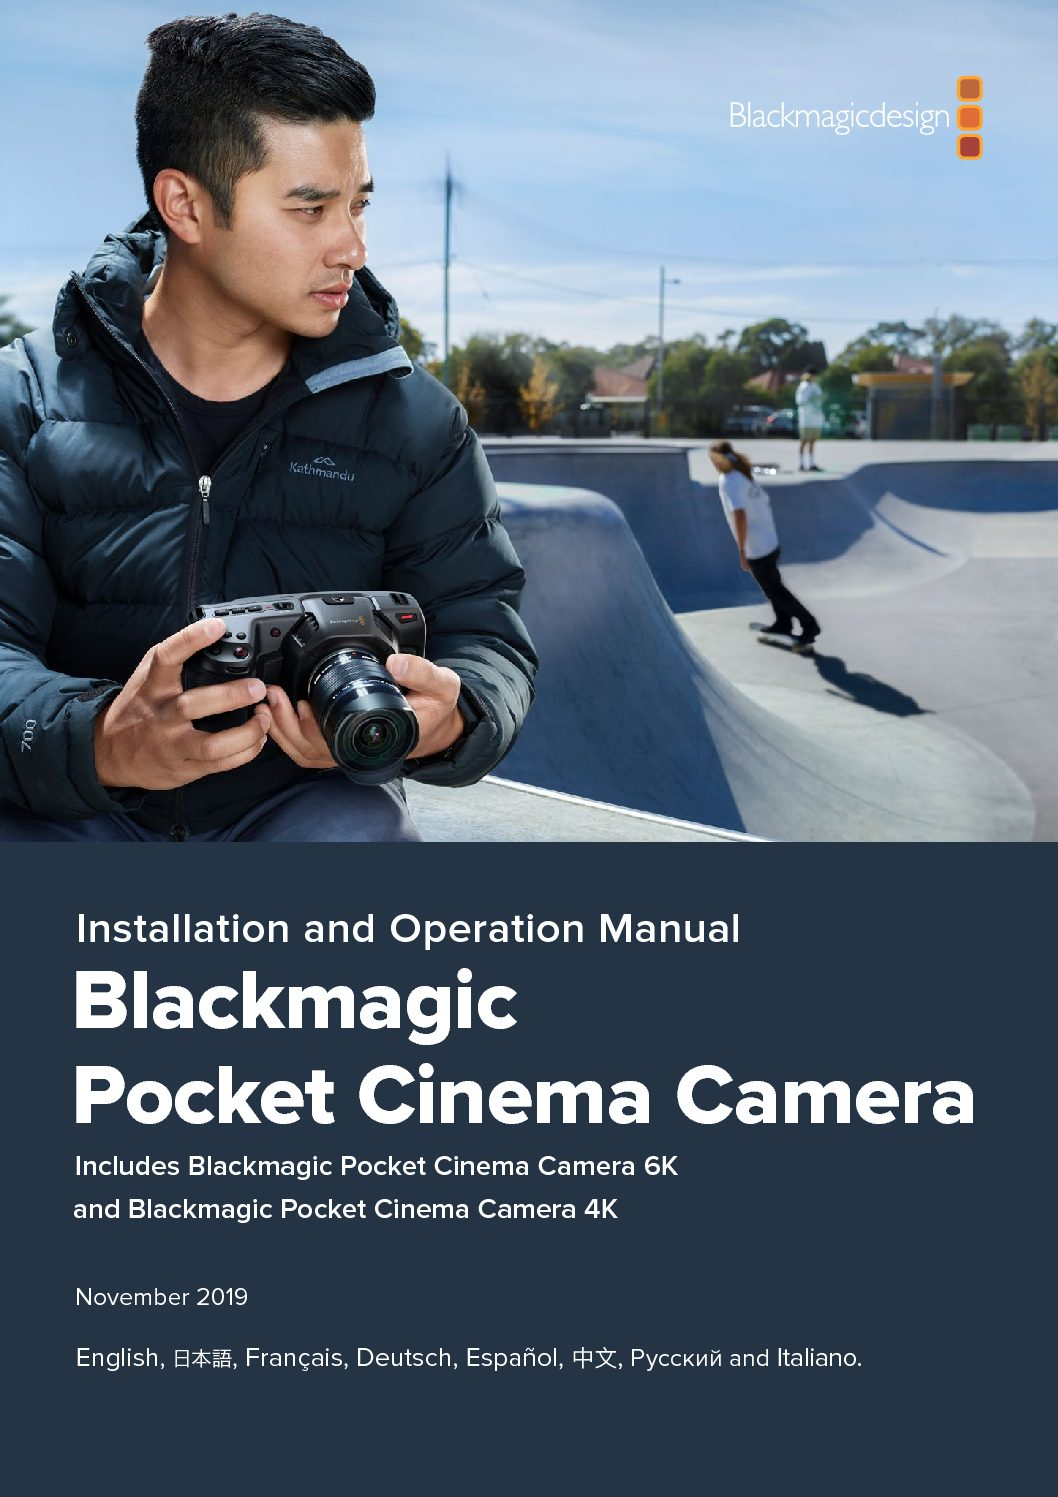 Blackmagic Design Pocket Cinema Camera Bmpcc 6k User Manual Videolane Com